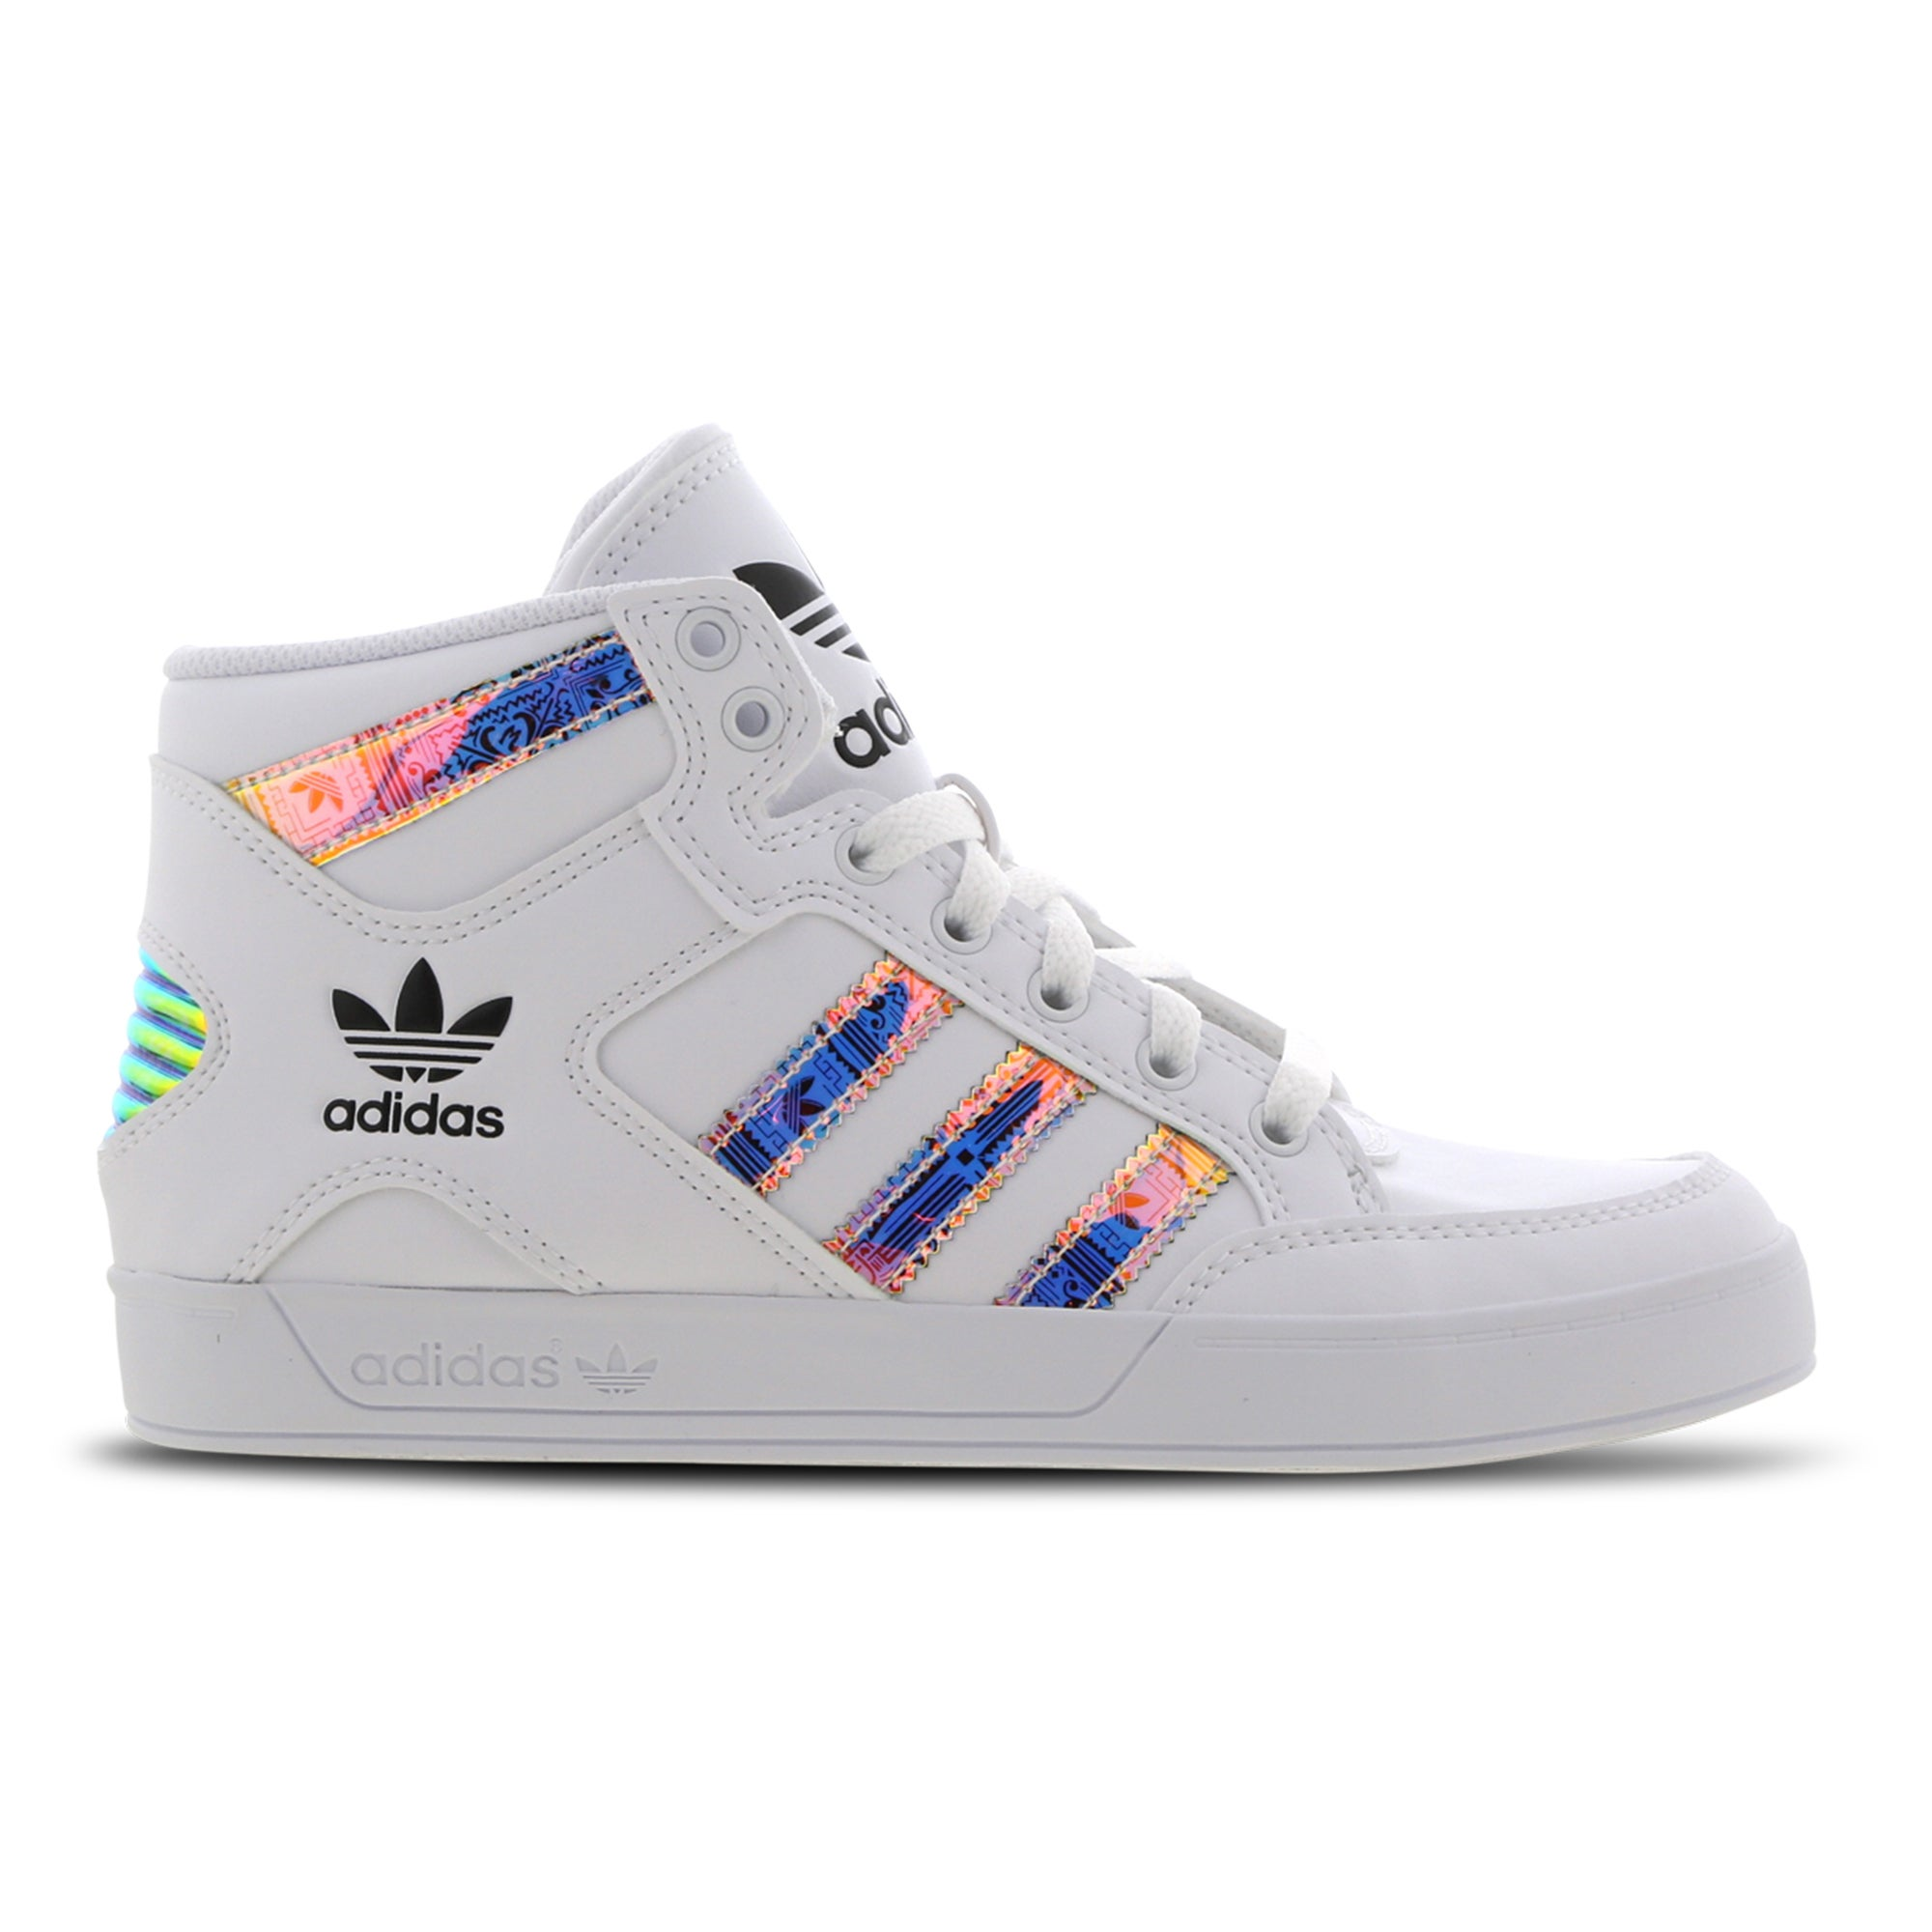 adidas Hardcourt Shoes